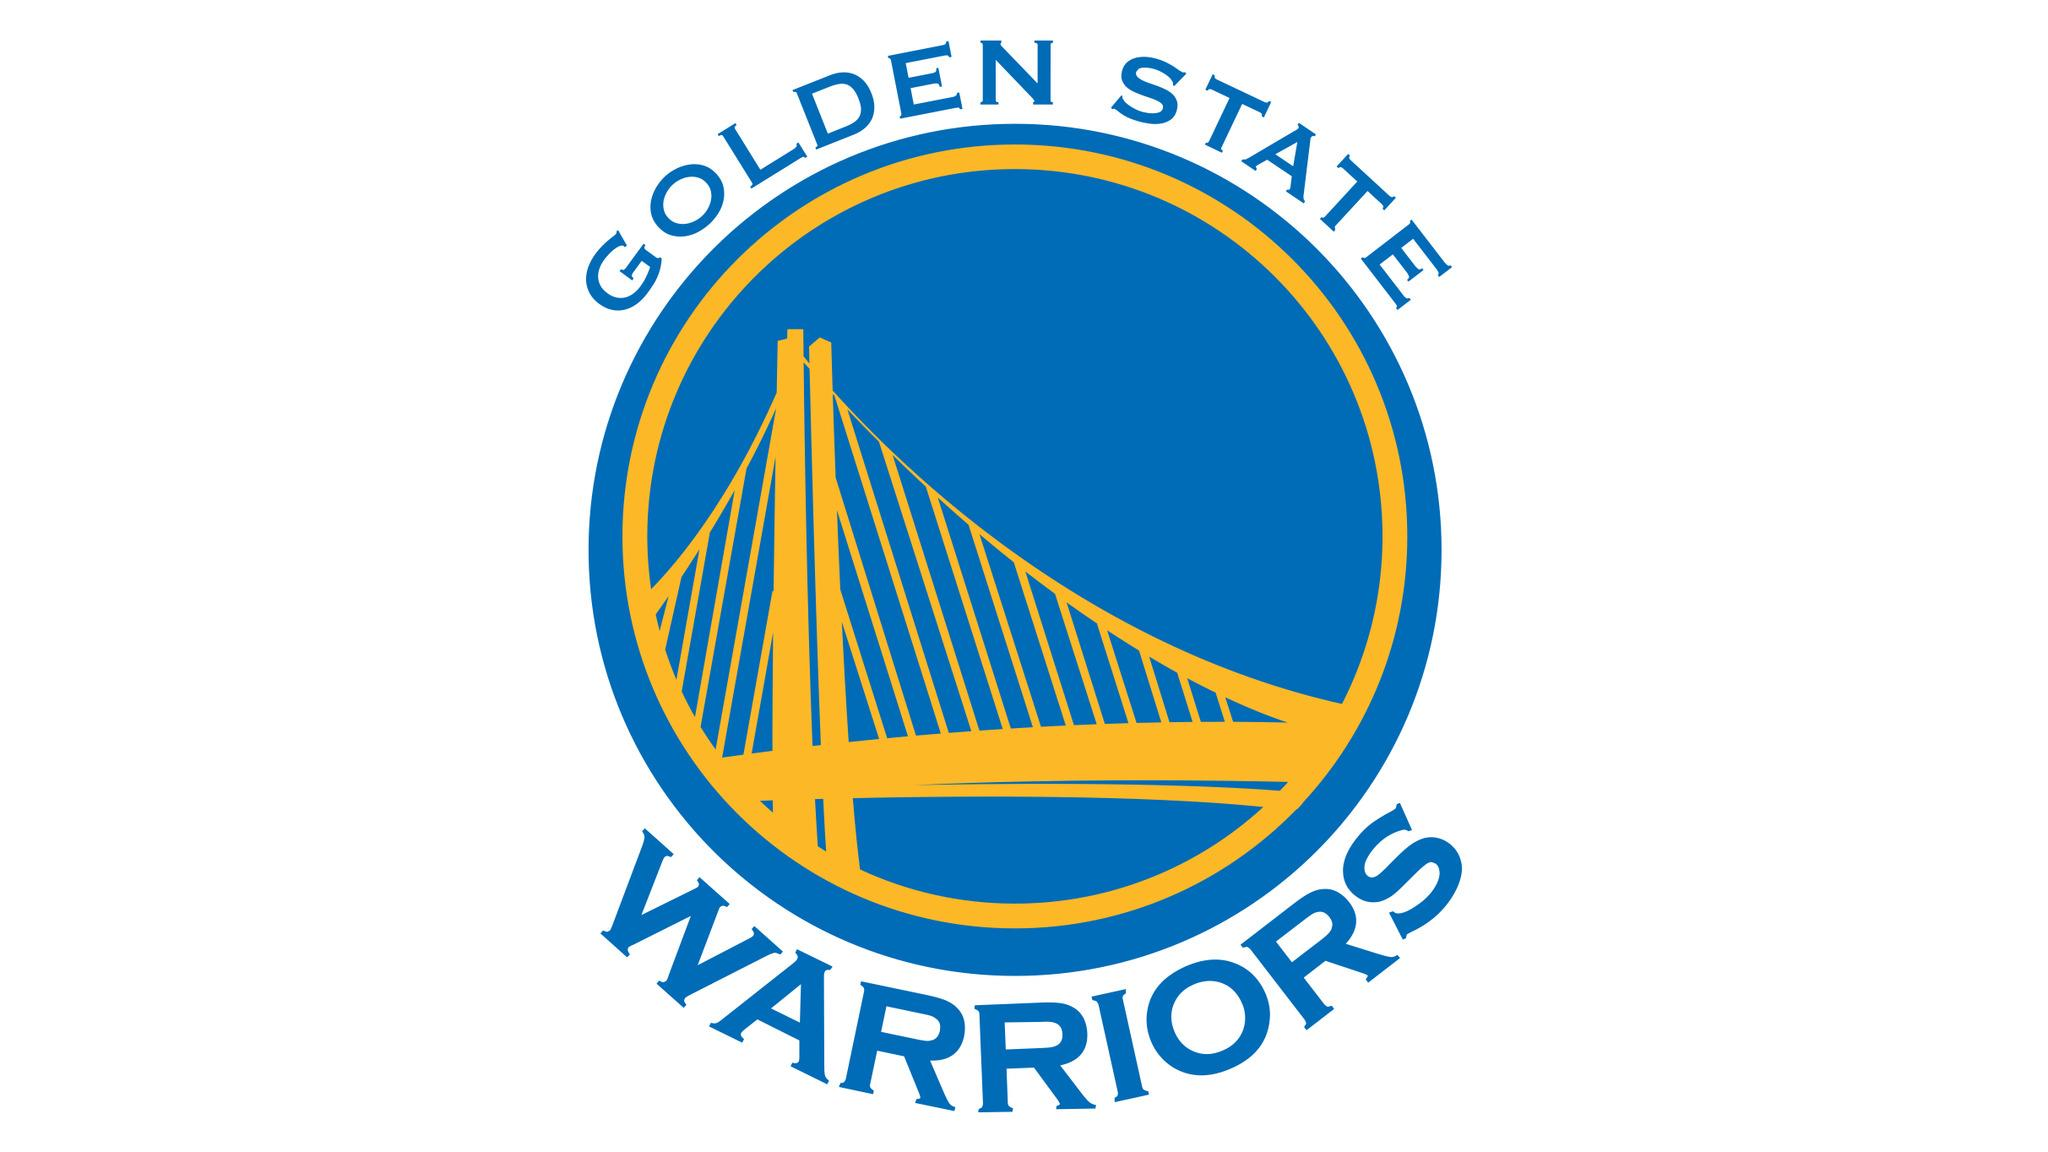 Golden State Warriors vs. New Orleans Pelicans - Oakland, CA 94621